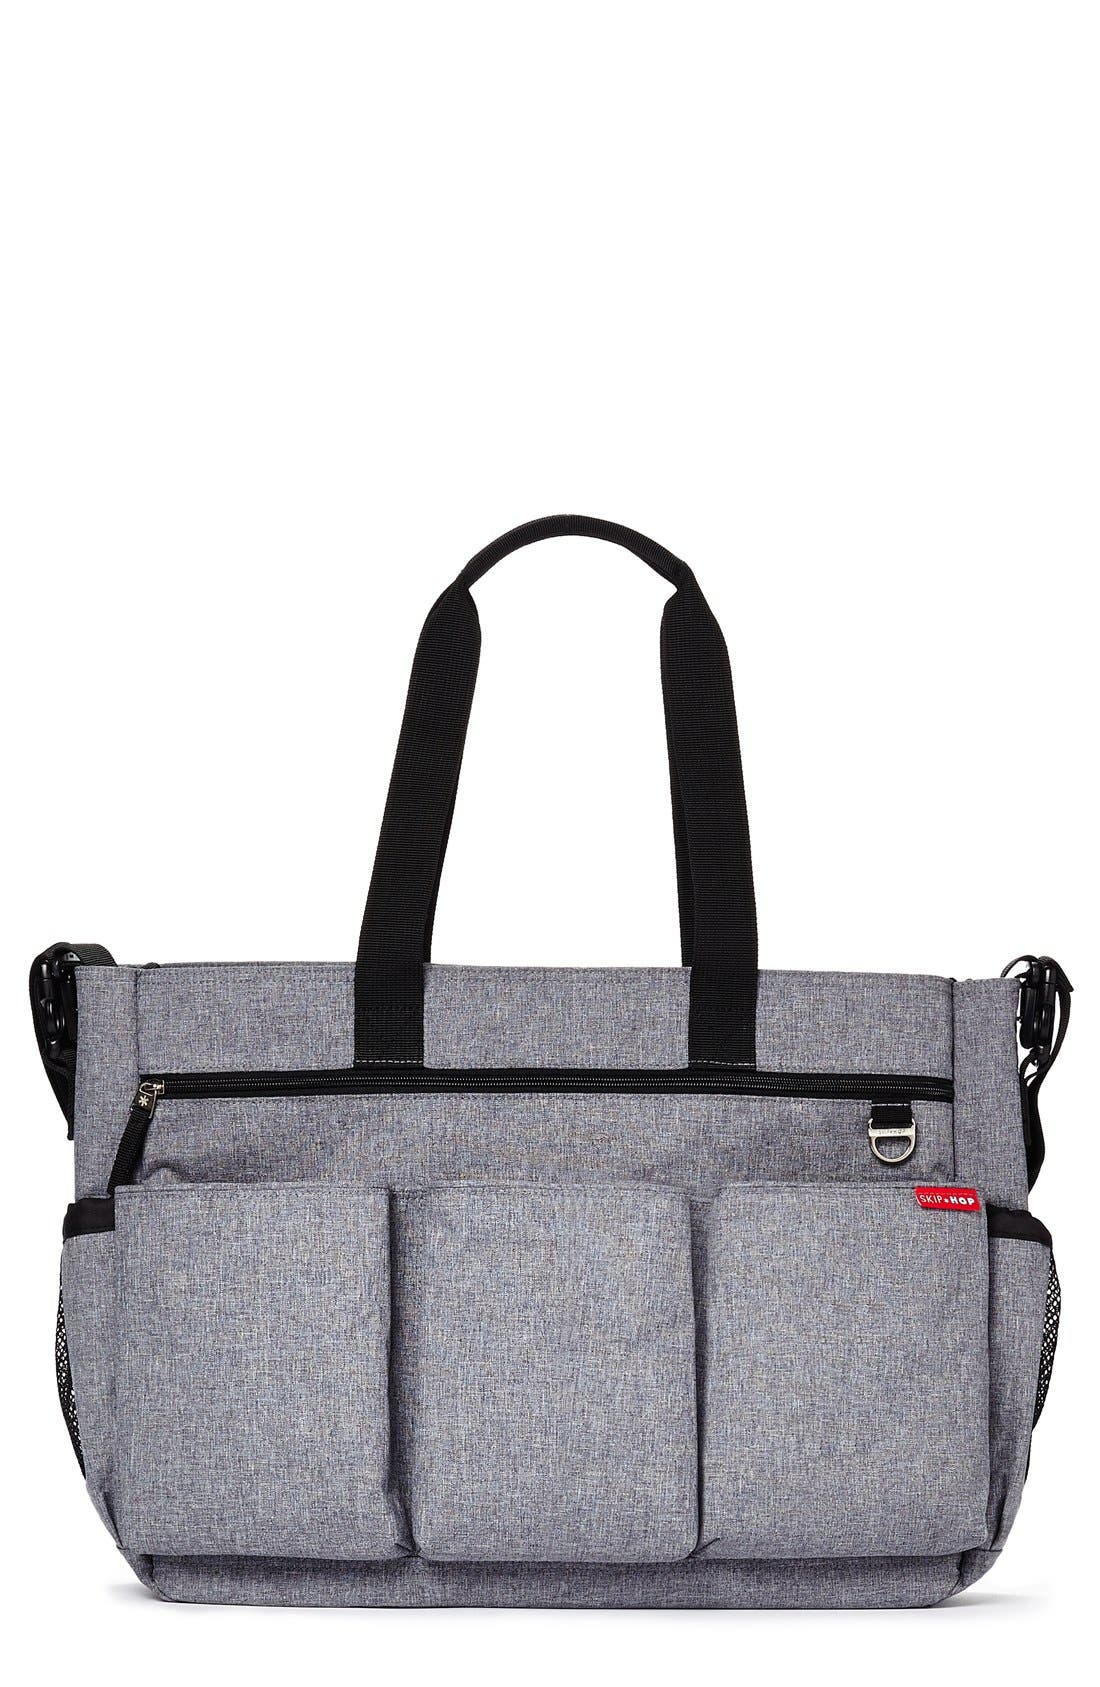 'Duo Double Signature' Diaper Bag,                         Main,                         color, 020